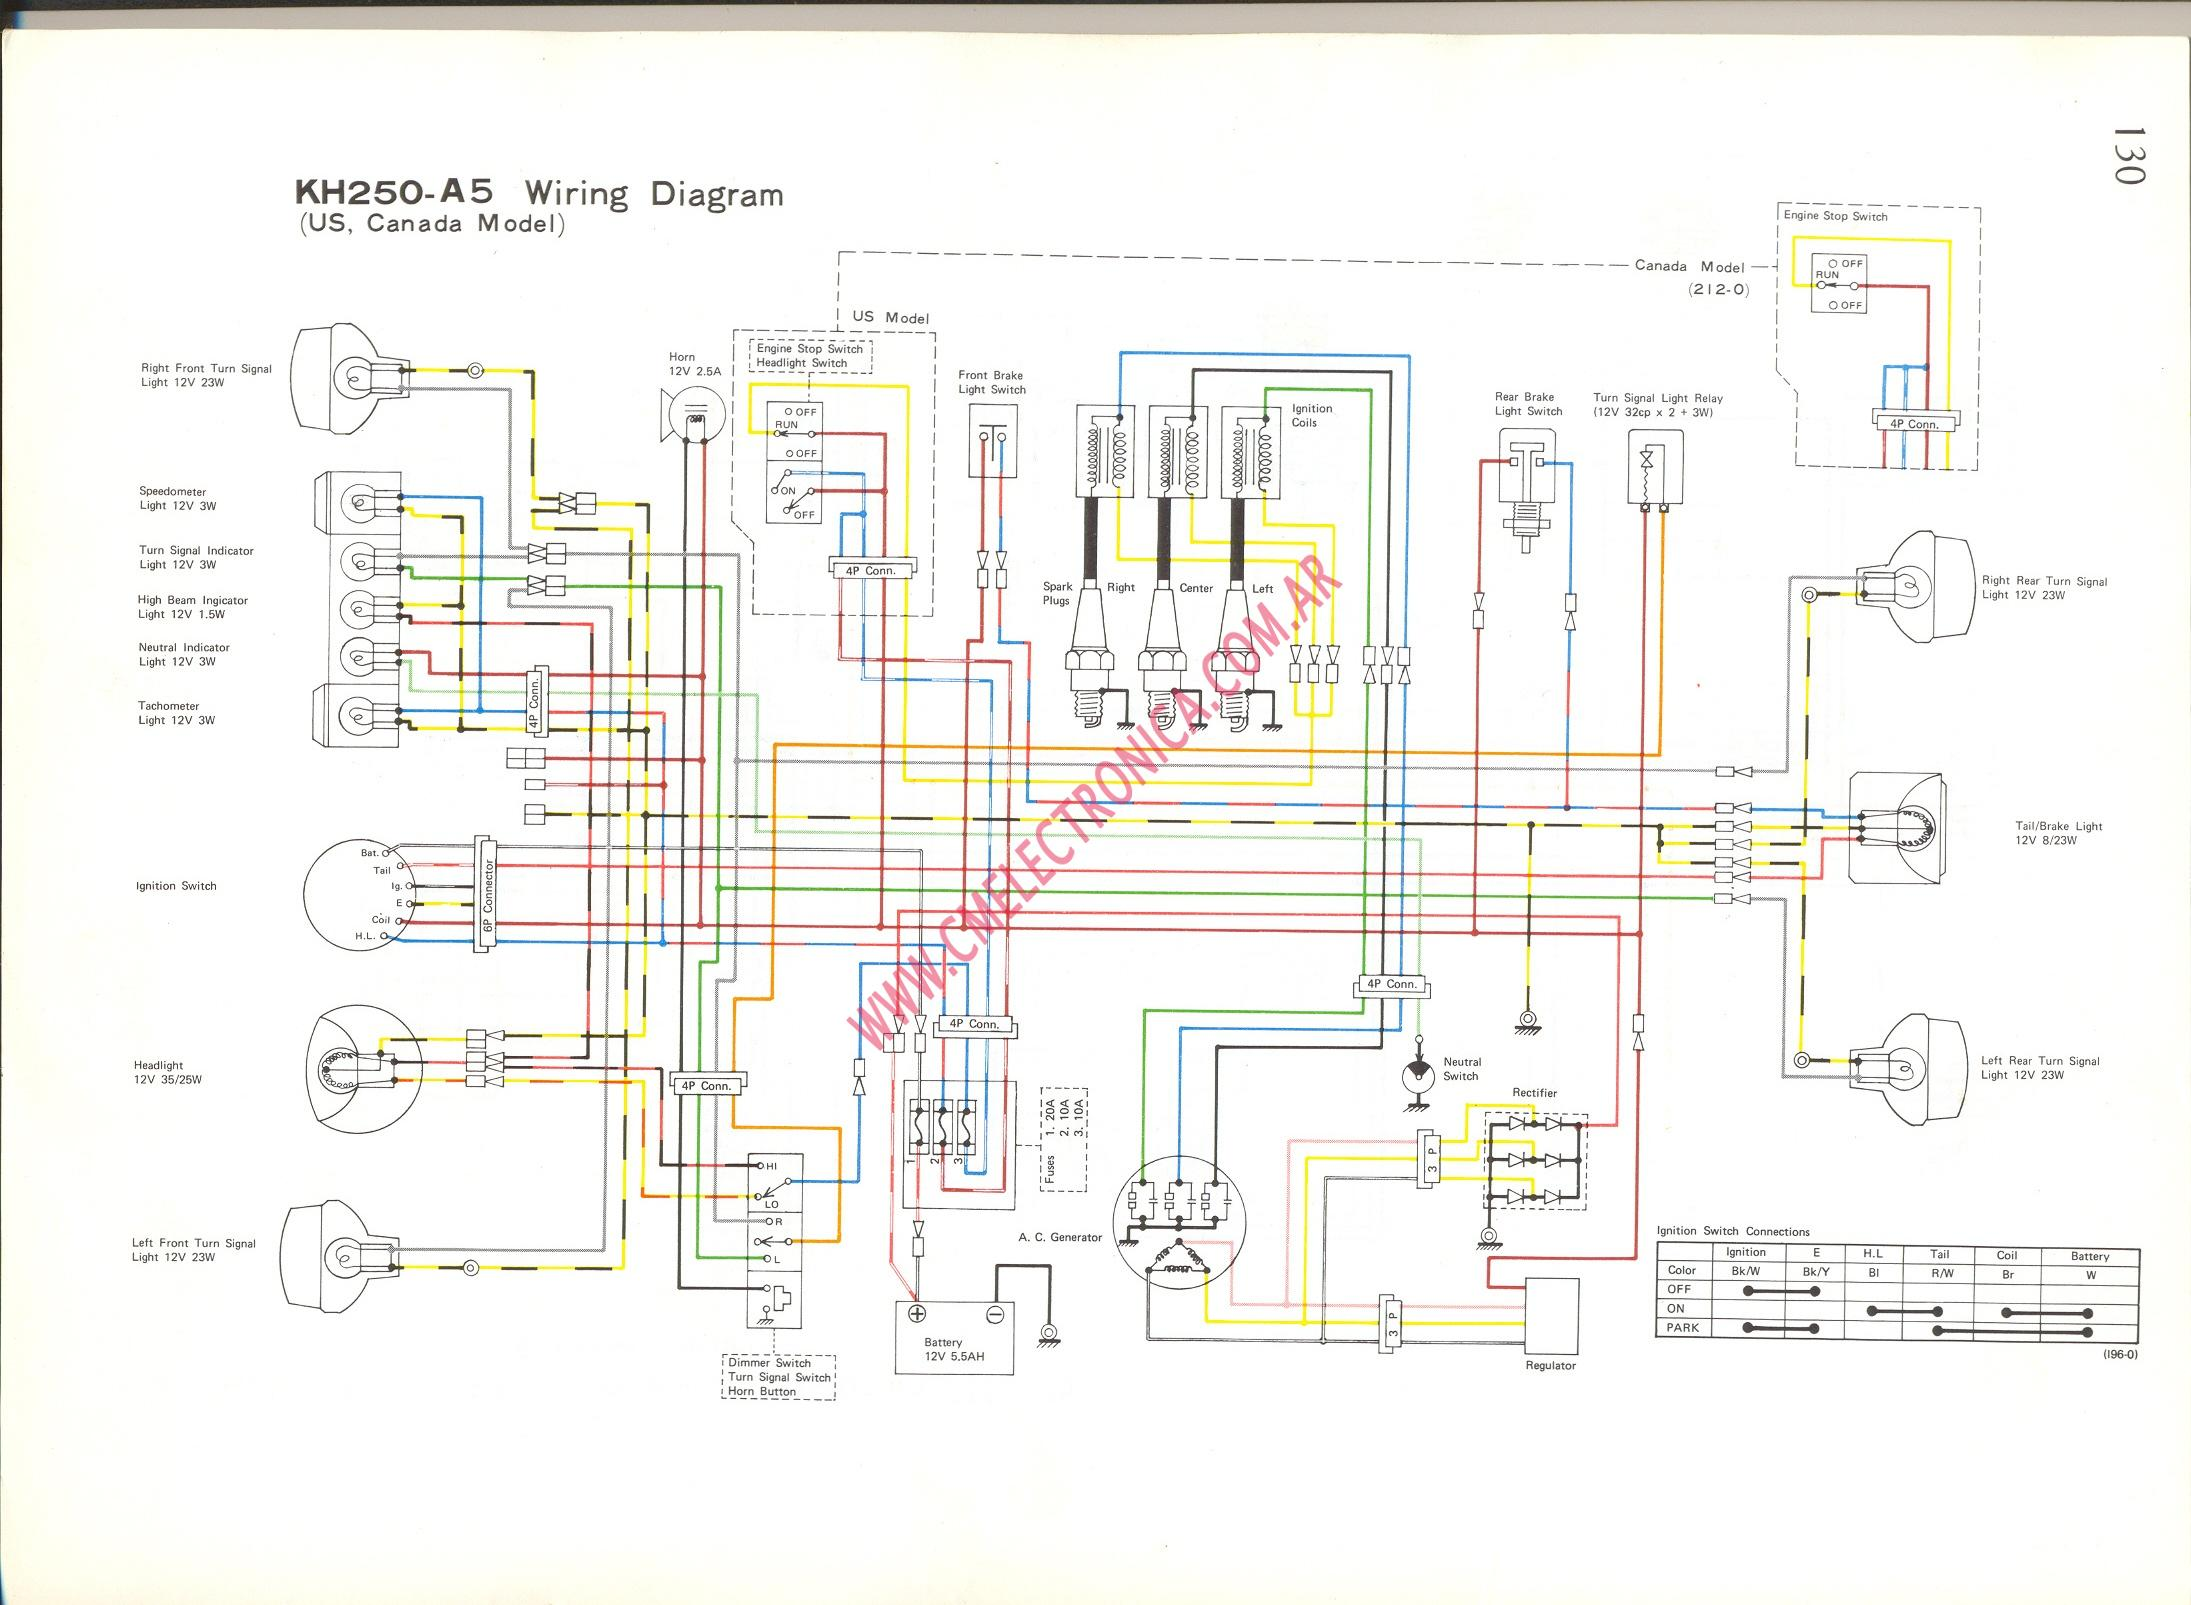 1980 Vanagon Wiring Diagram Diy Enthusiasts Diagrams Lexus Is300 Fuel Pump Lodestar Hoist Get Free Image About Relays